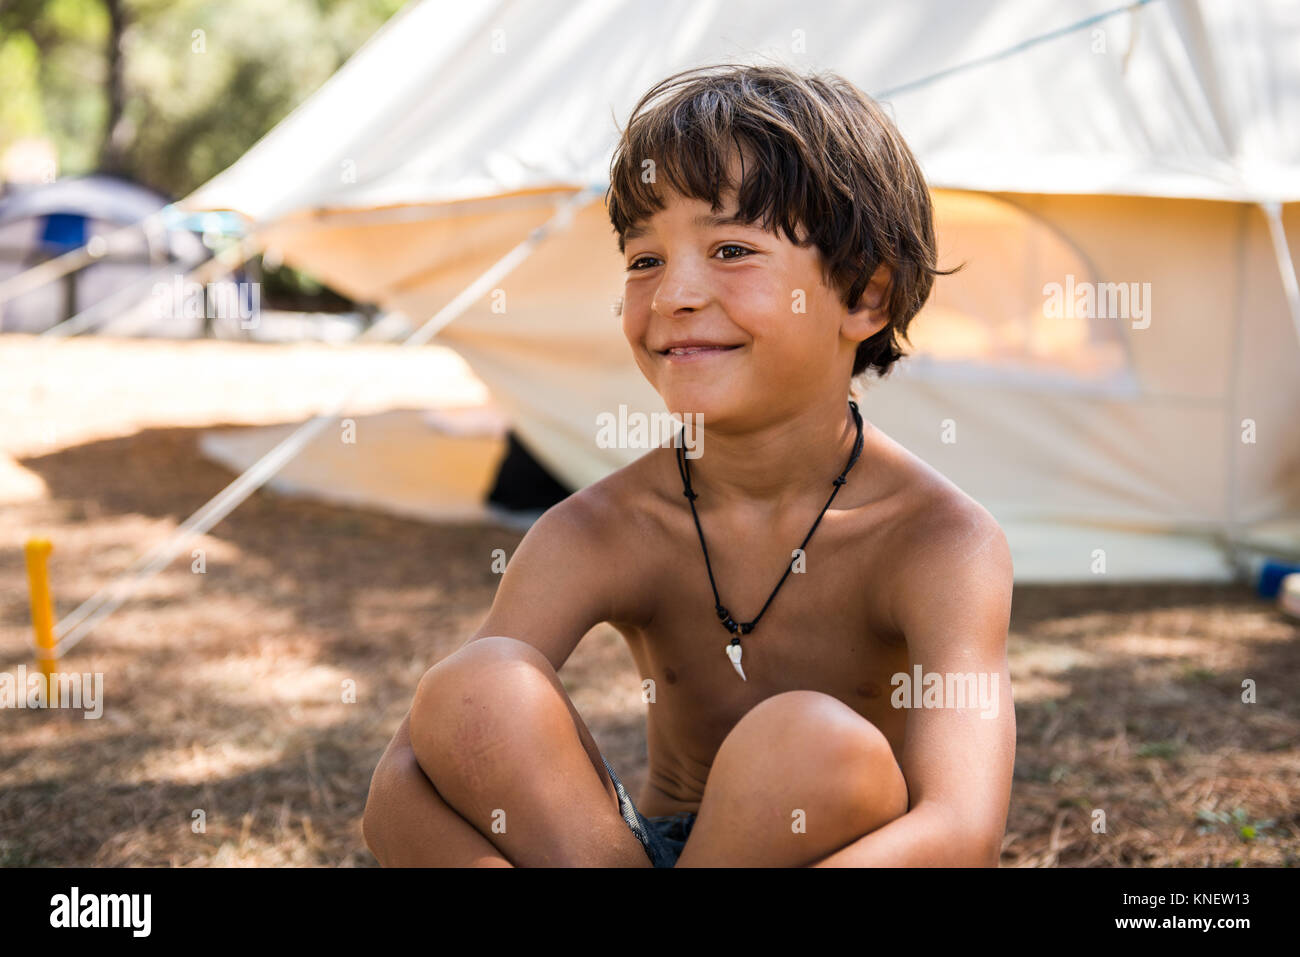 Happy bare chested boy sitting on campsite - Stock Image